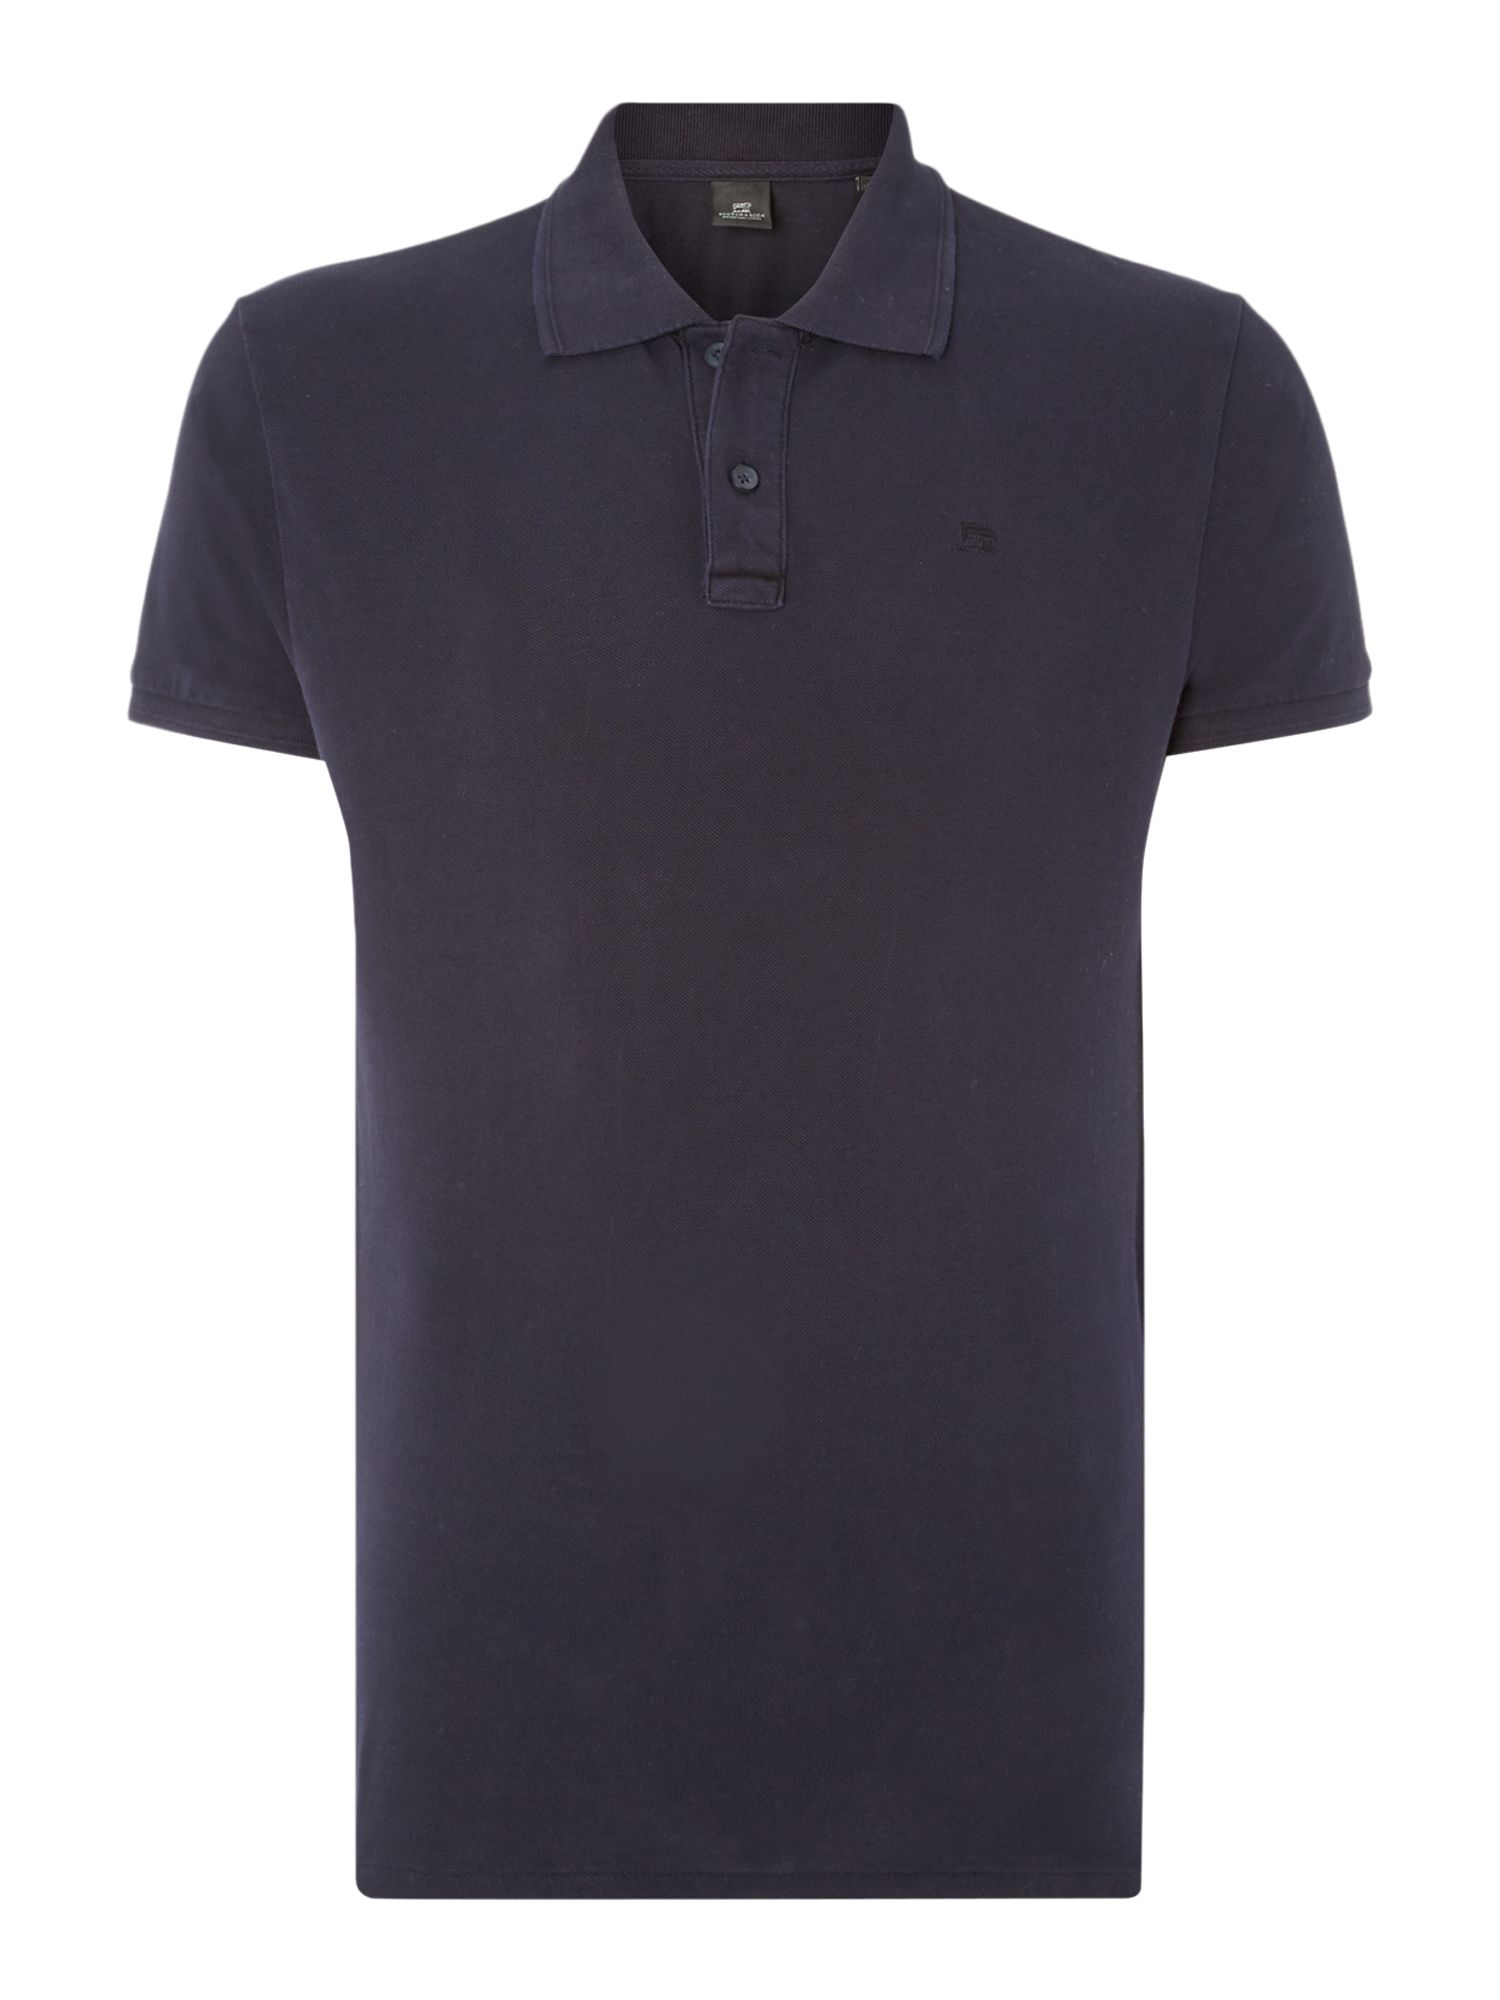 Men's Scotch & Soda Classic pique polo, Midnight